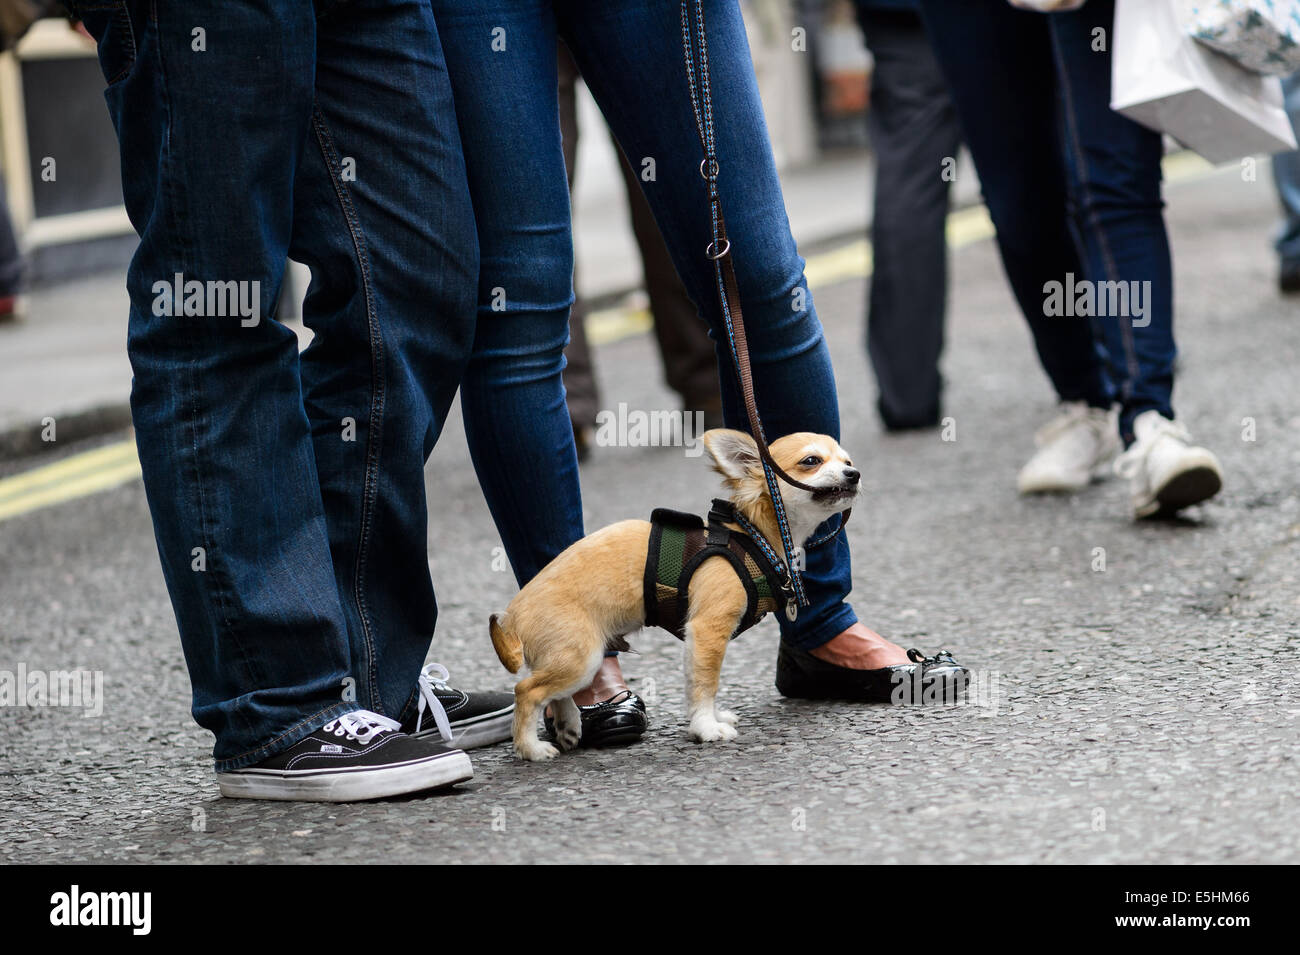 A small brown dog chihuahua chewing on its leash with its owners stood next to it on a London street. - Stock Image